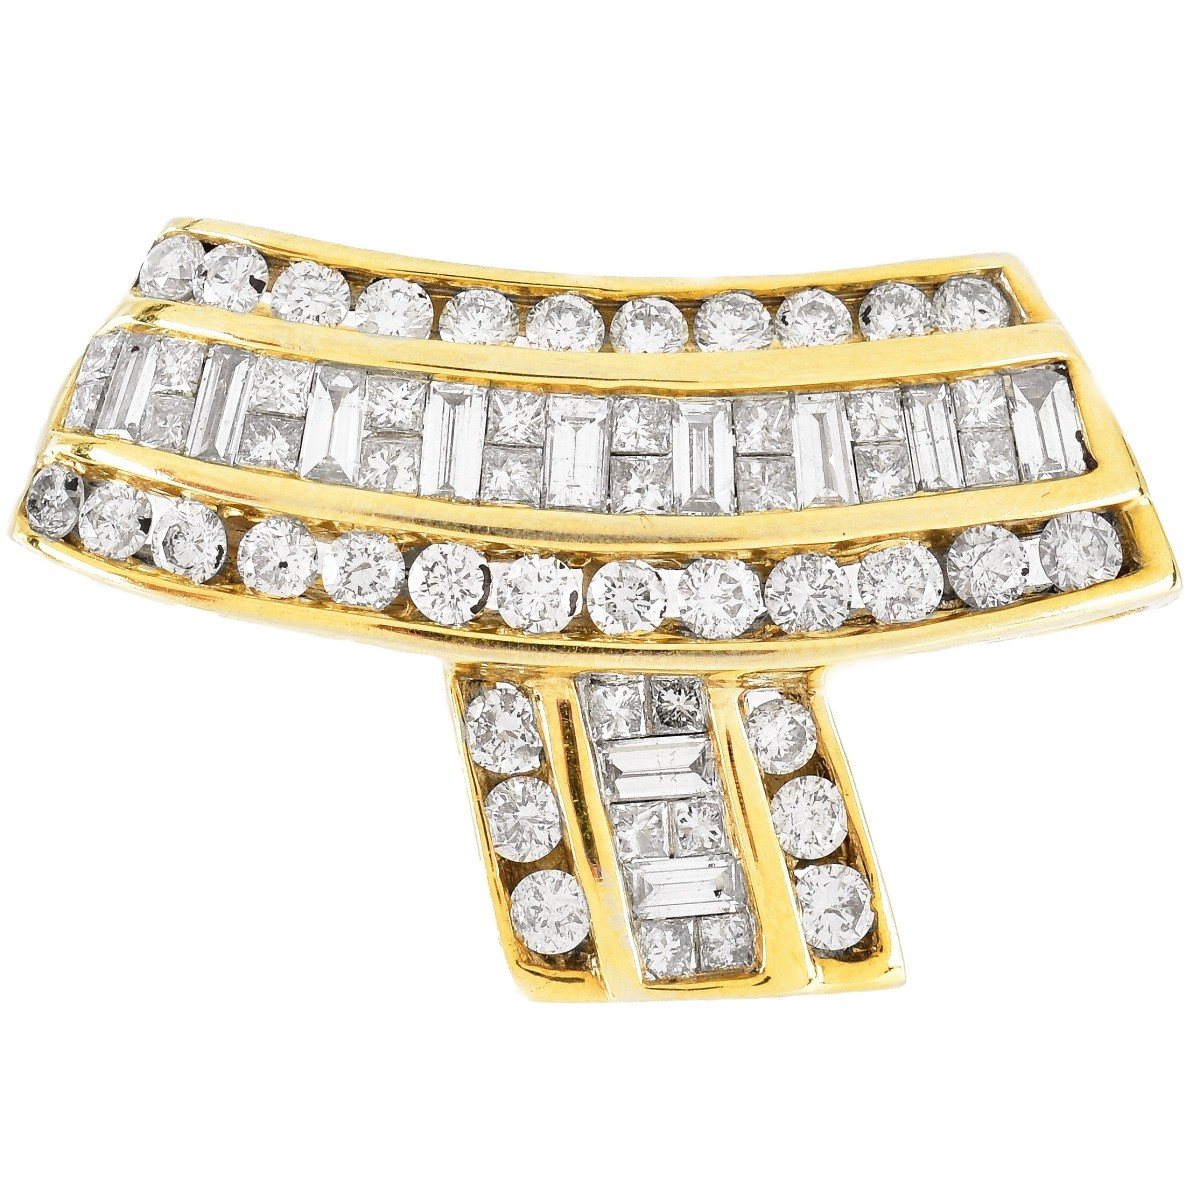 Diamond and 14K Gold Brooch